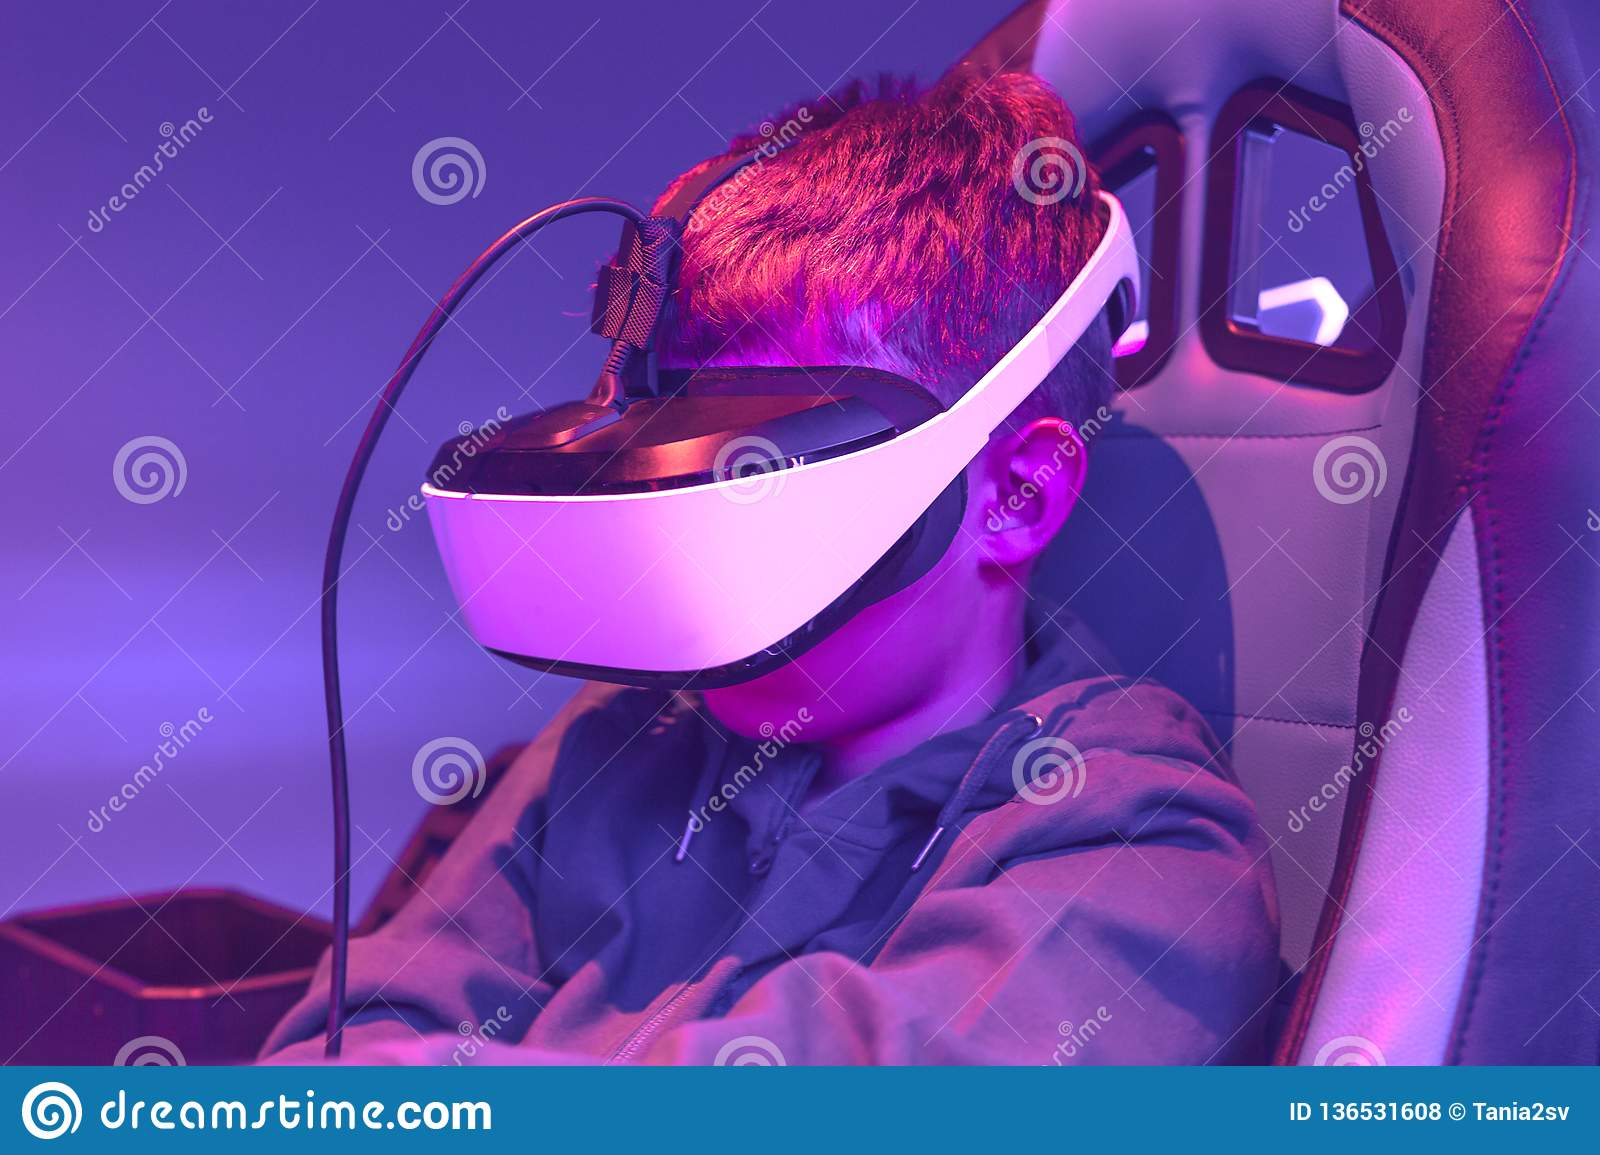 Boy wearing vr headset at virtual reality center